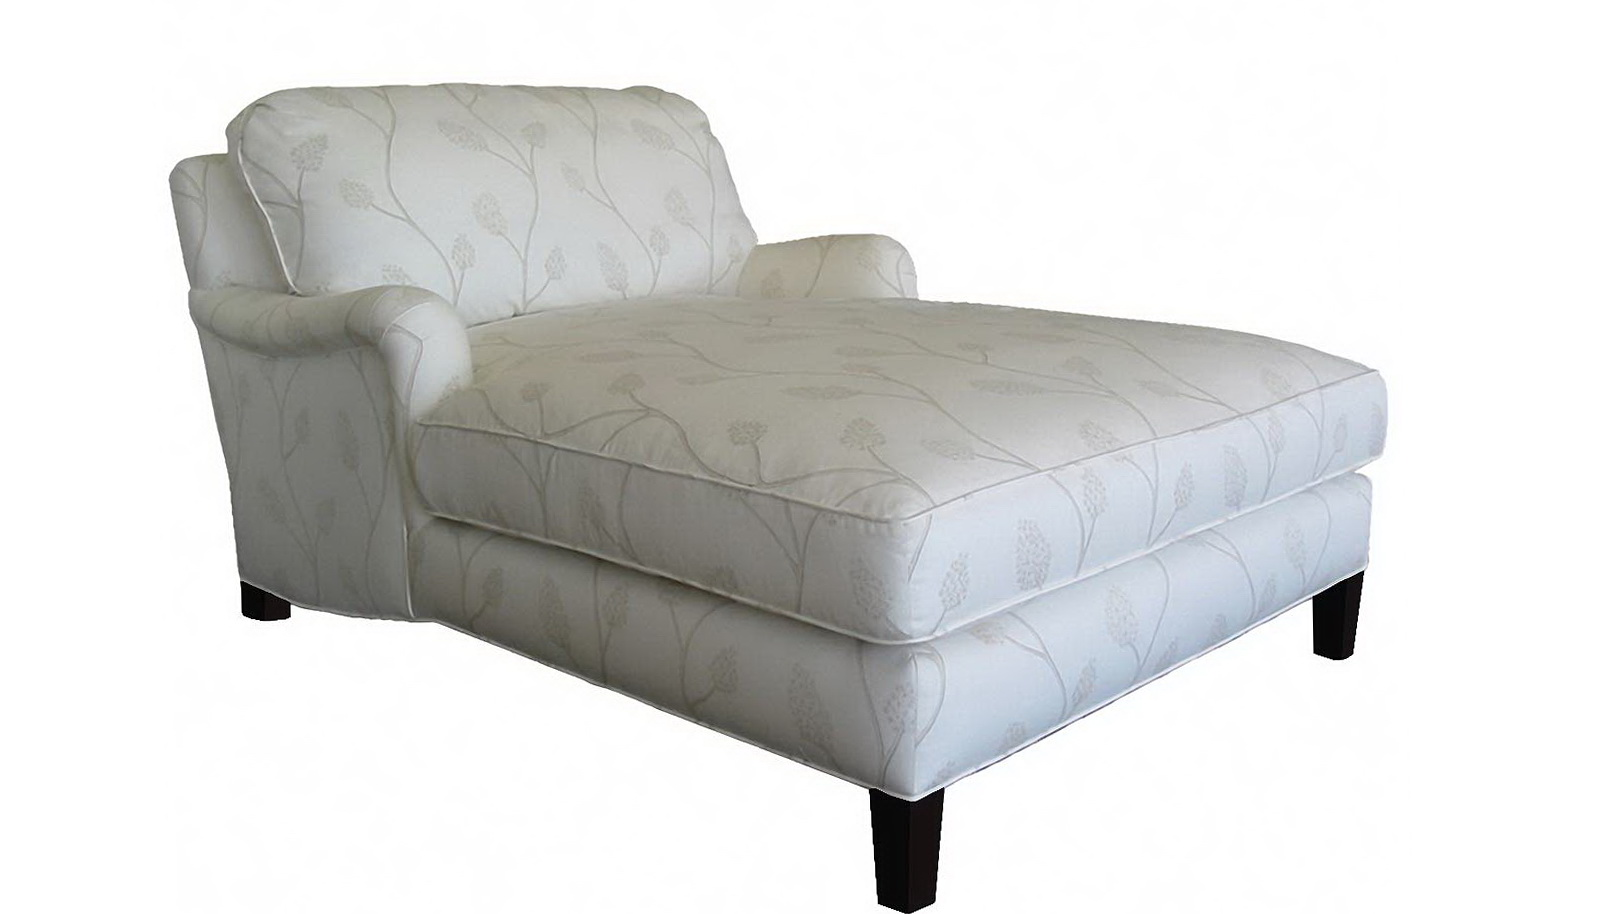 Double Arm Chaise Lounge Chair